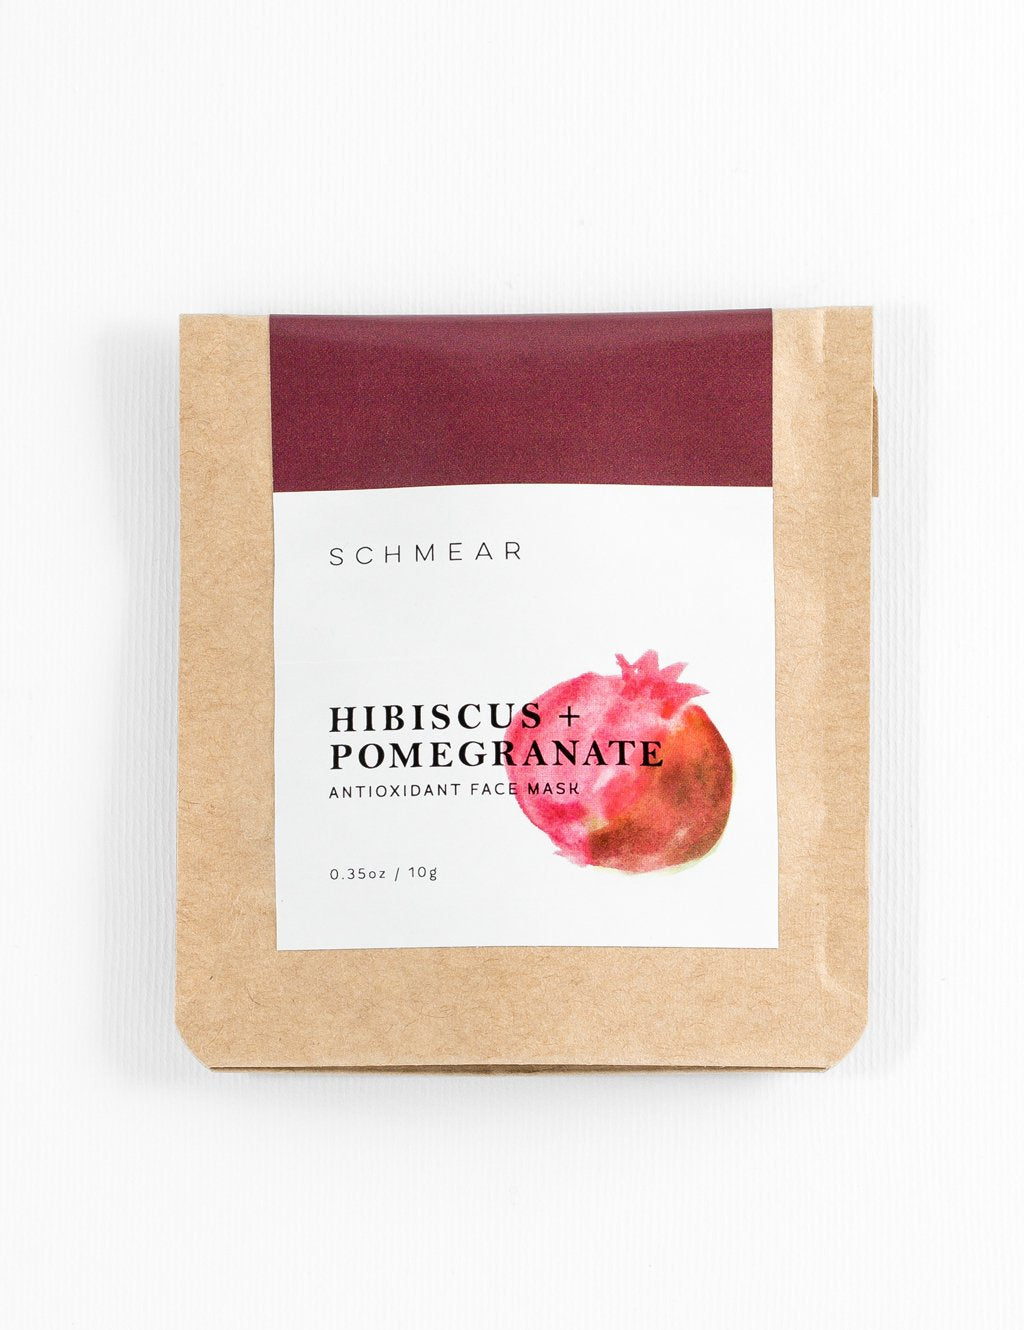 Hibiscus + Pomegranate Antioxidant Face Mask (10g)